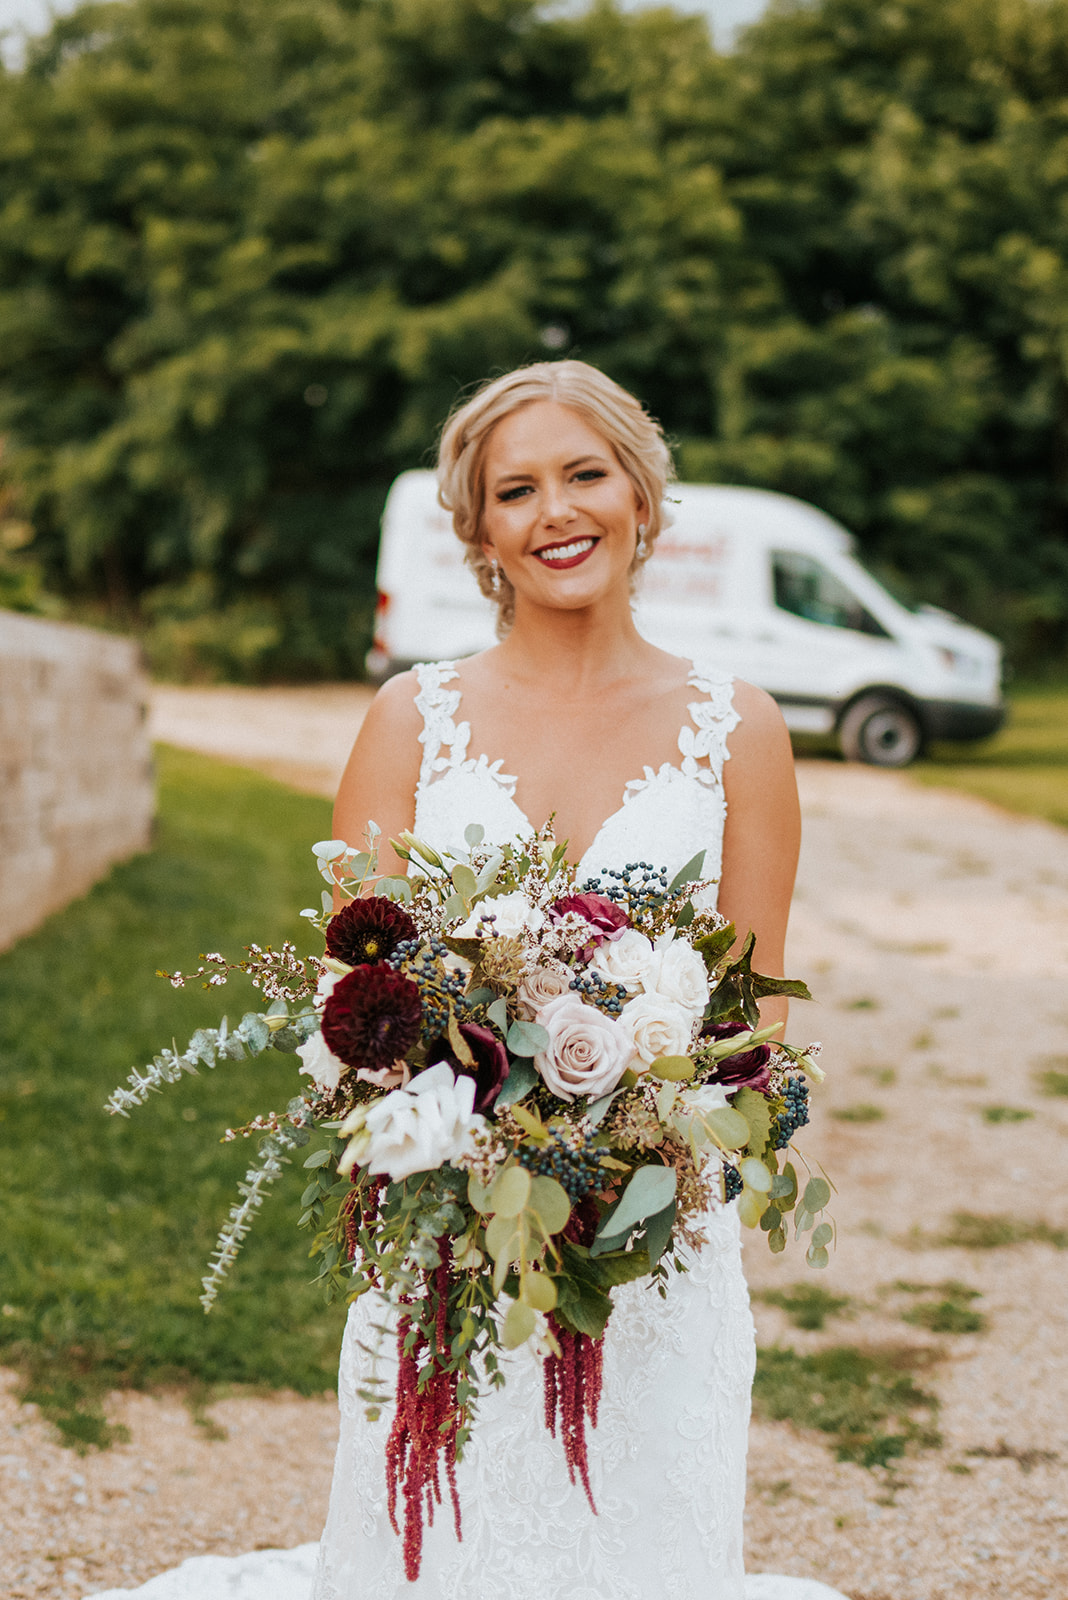 overthevineswisconsinwedding_0537.jpg